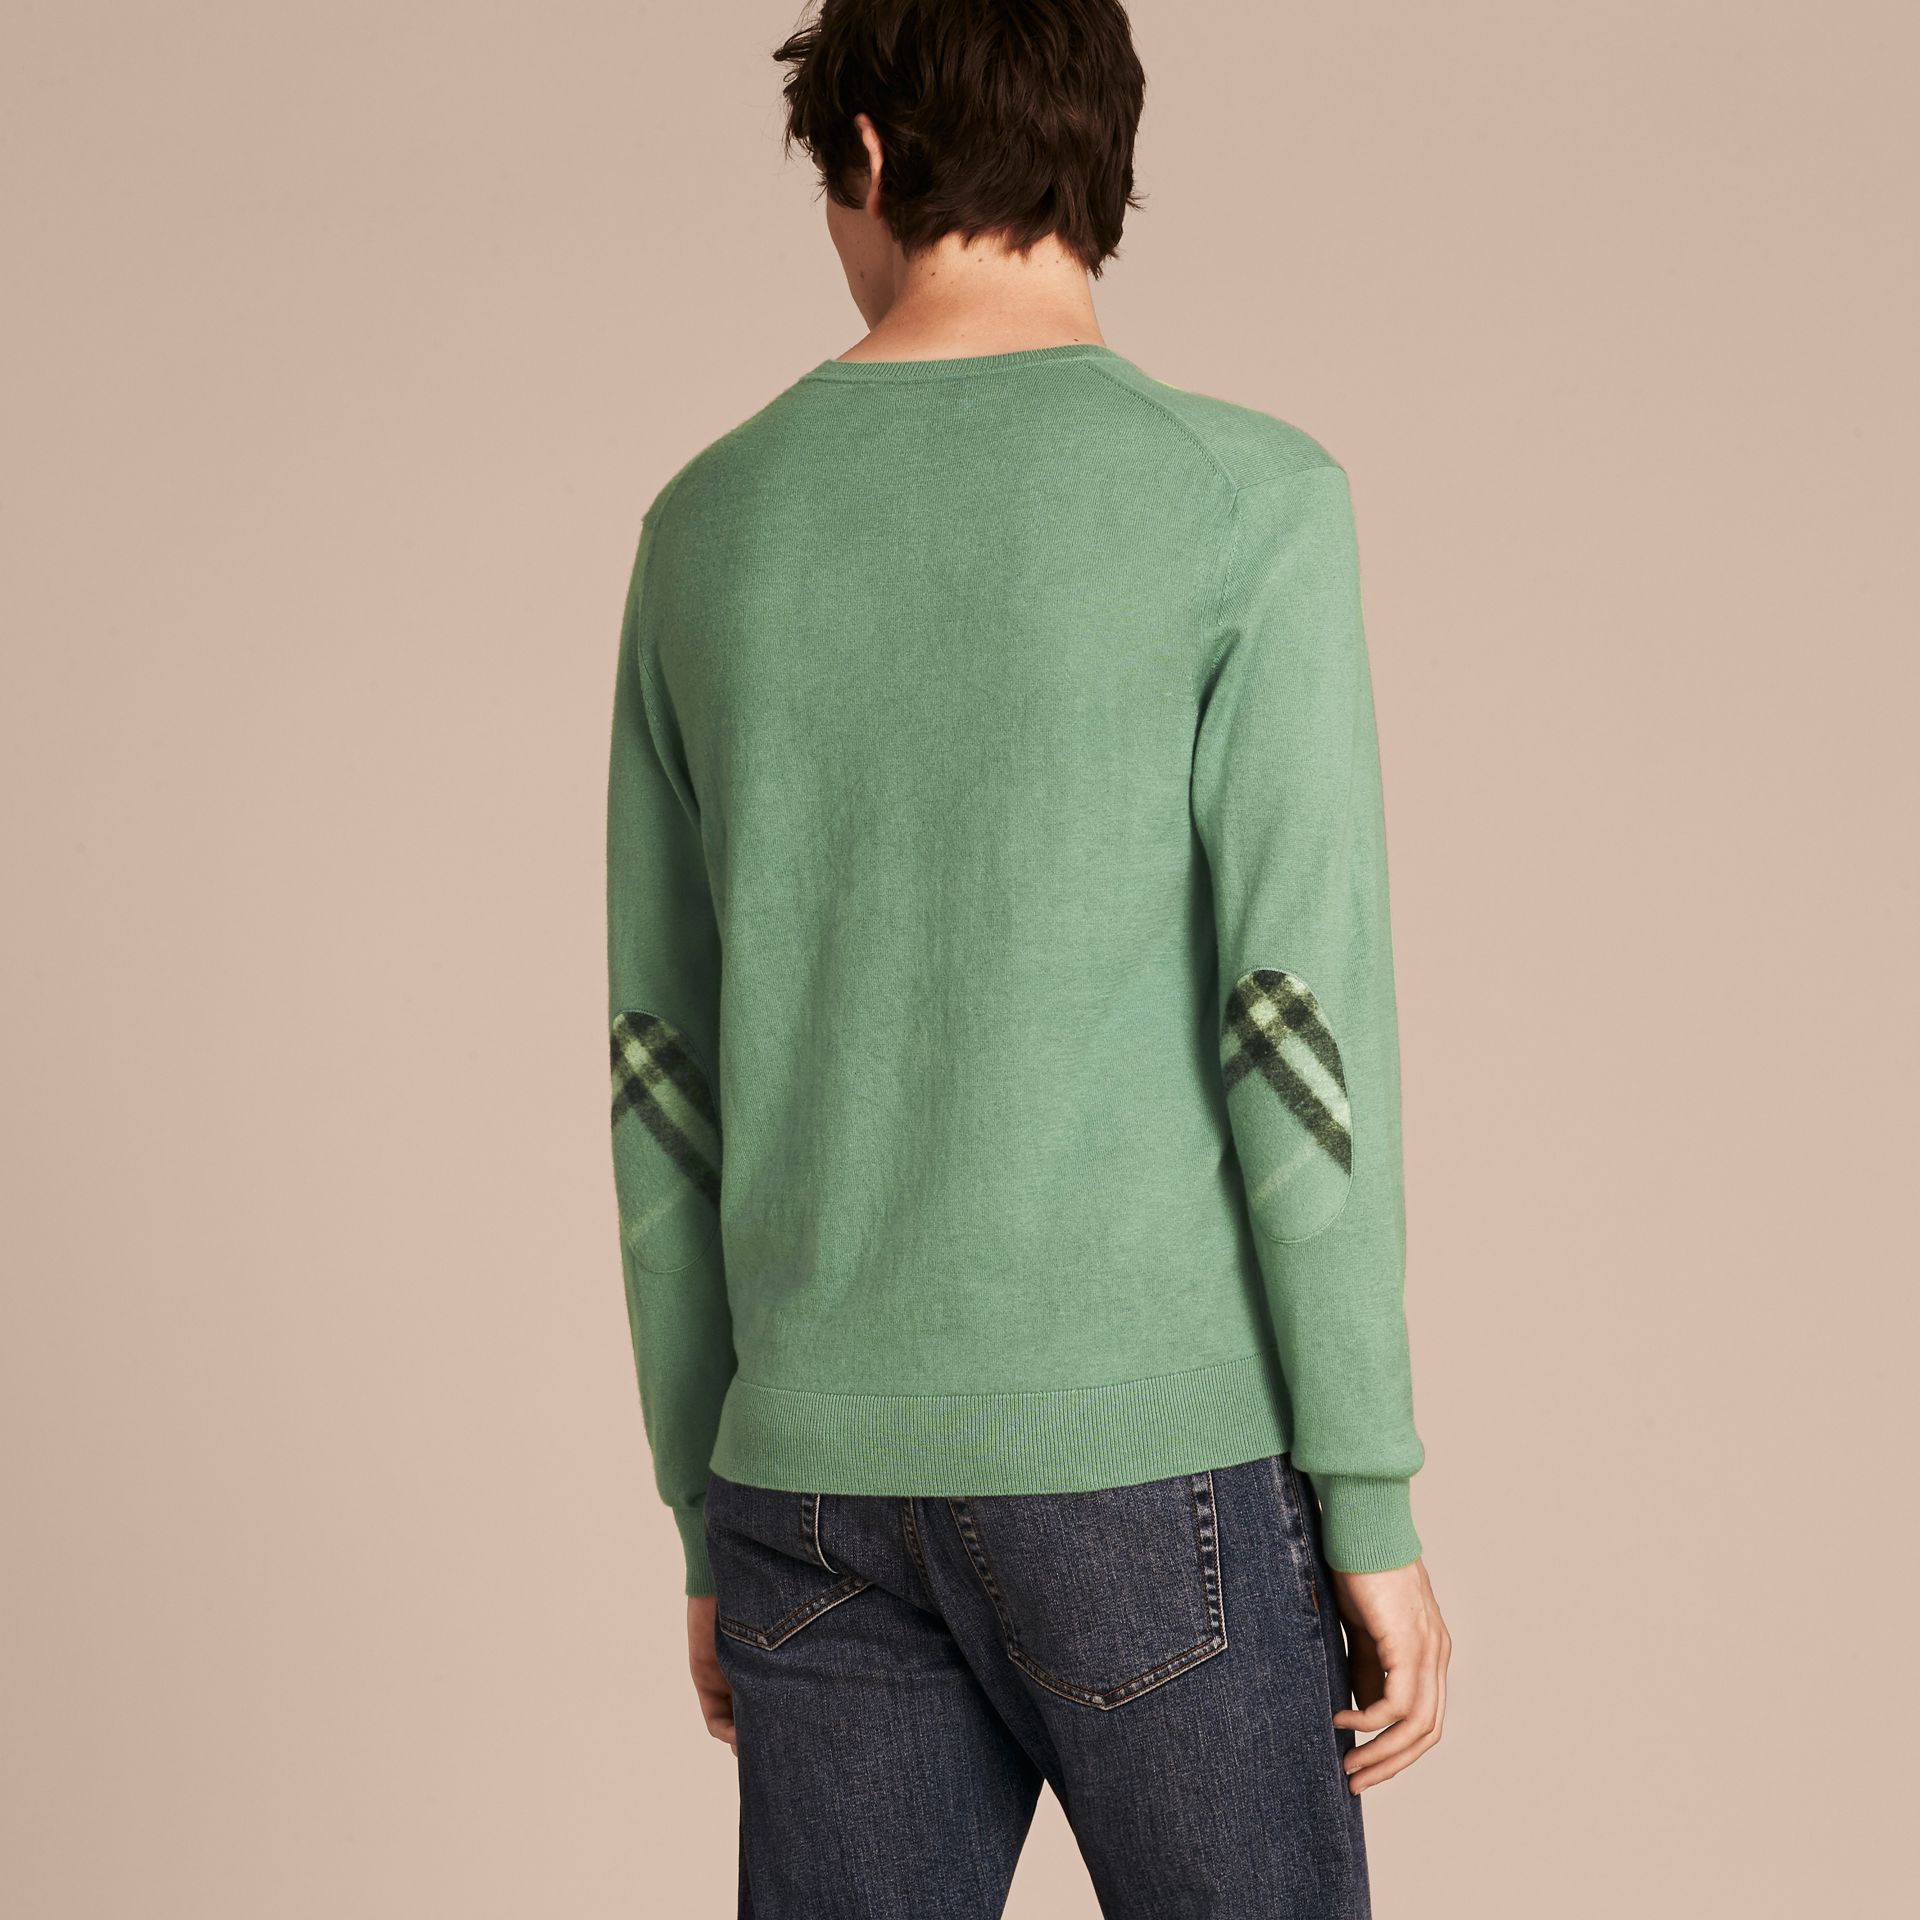 Eucalyptus green Check Trim Cashmere Cotton Sweater Eucalyptus Green - gallery image 3